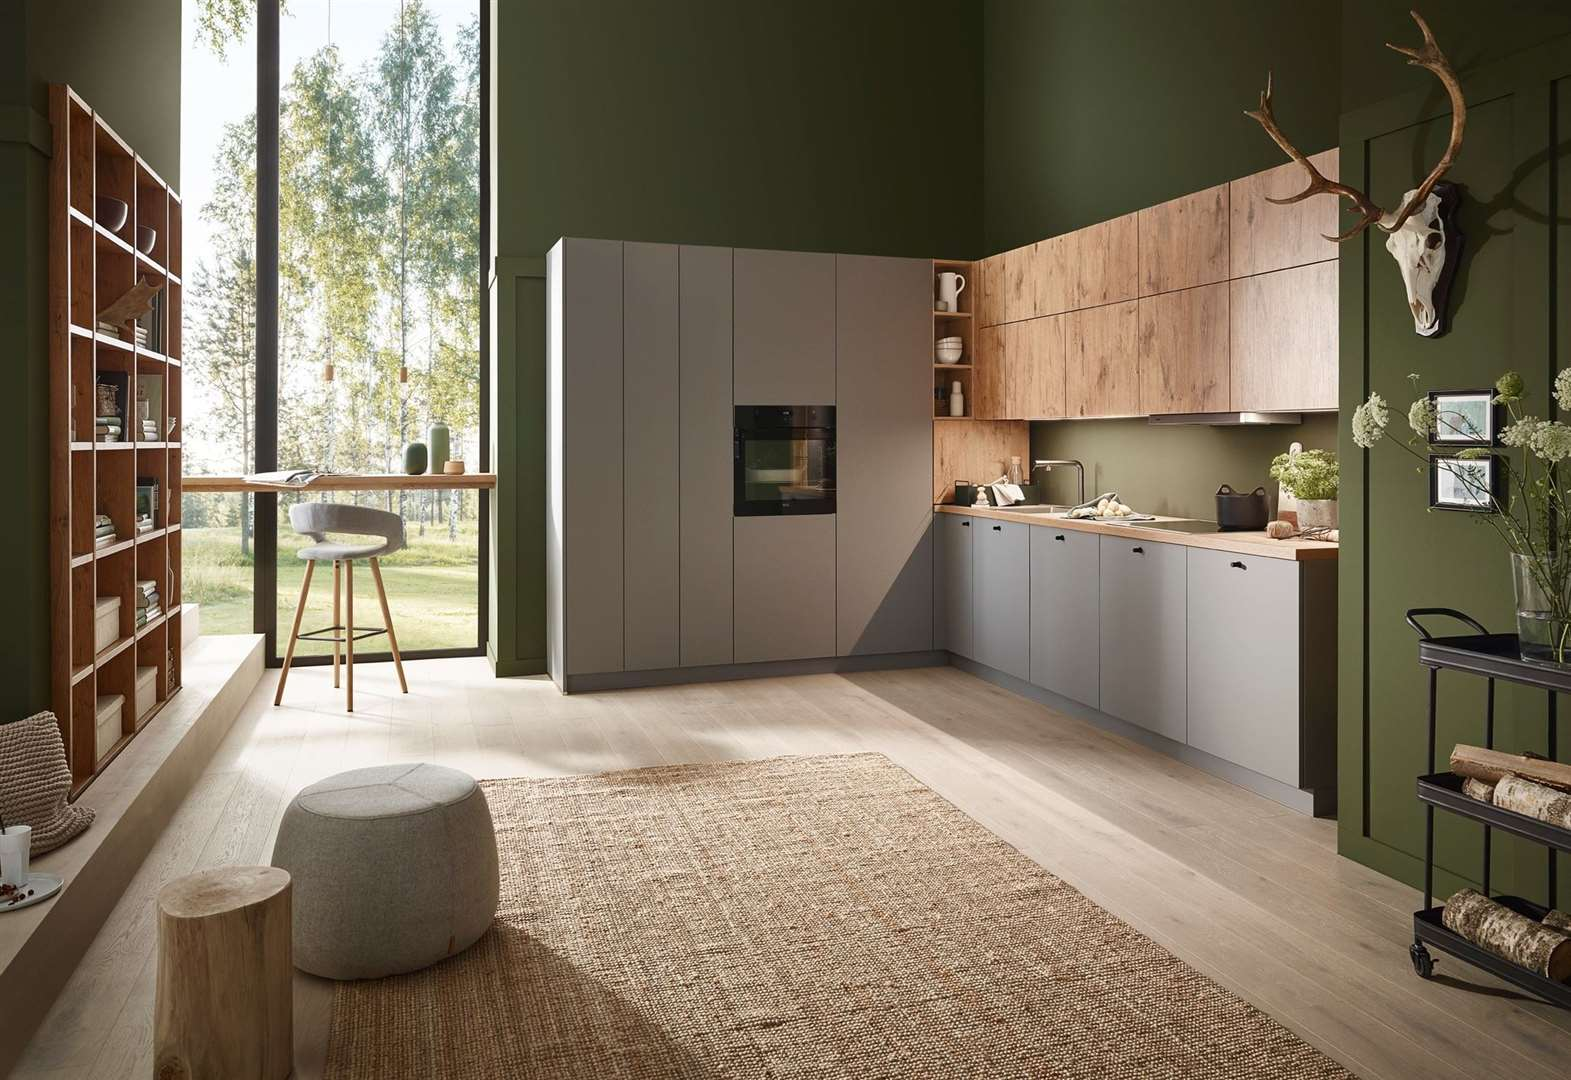 Advertisement Feature: Realise your dream kitchen